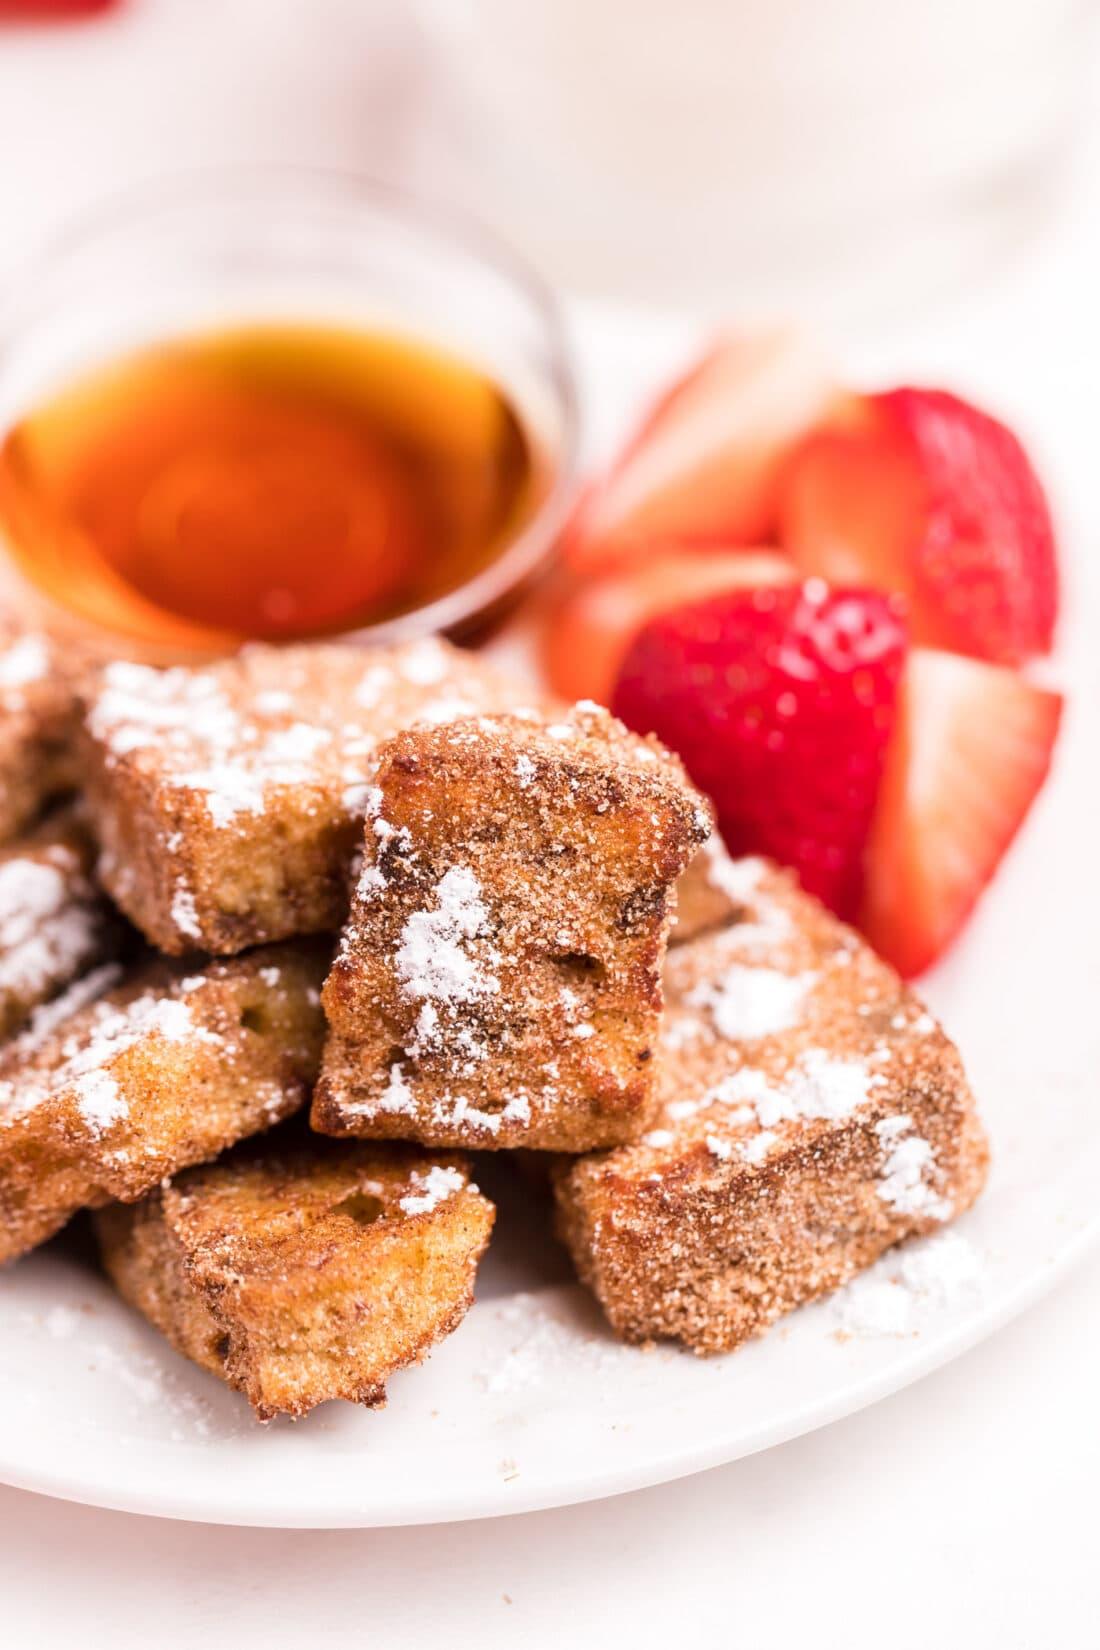 plate of Air Fryer French Toast Bites with strawberries on the side